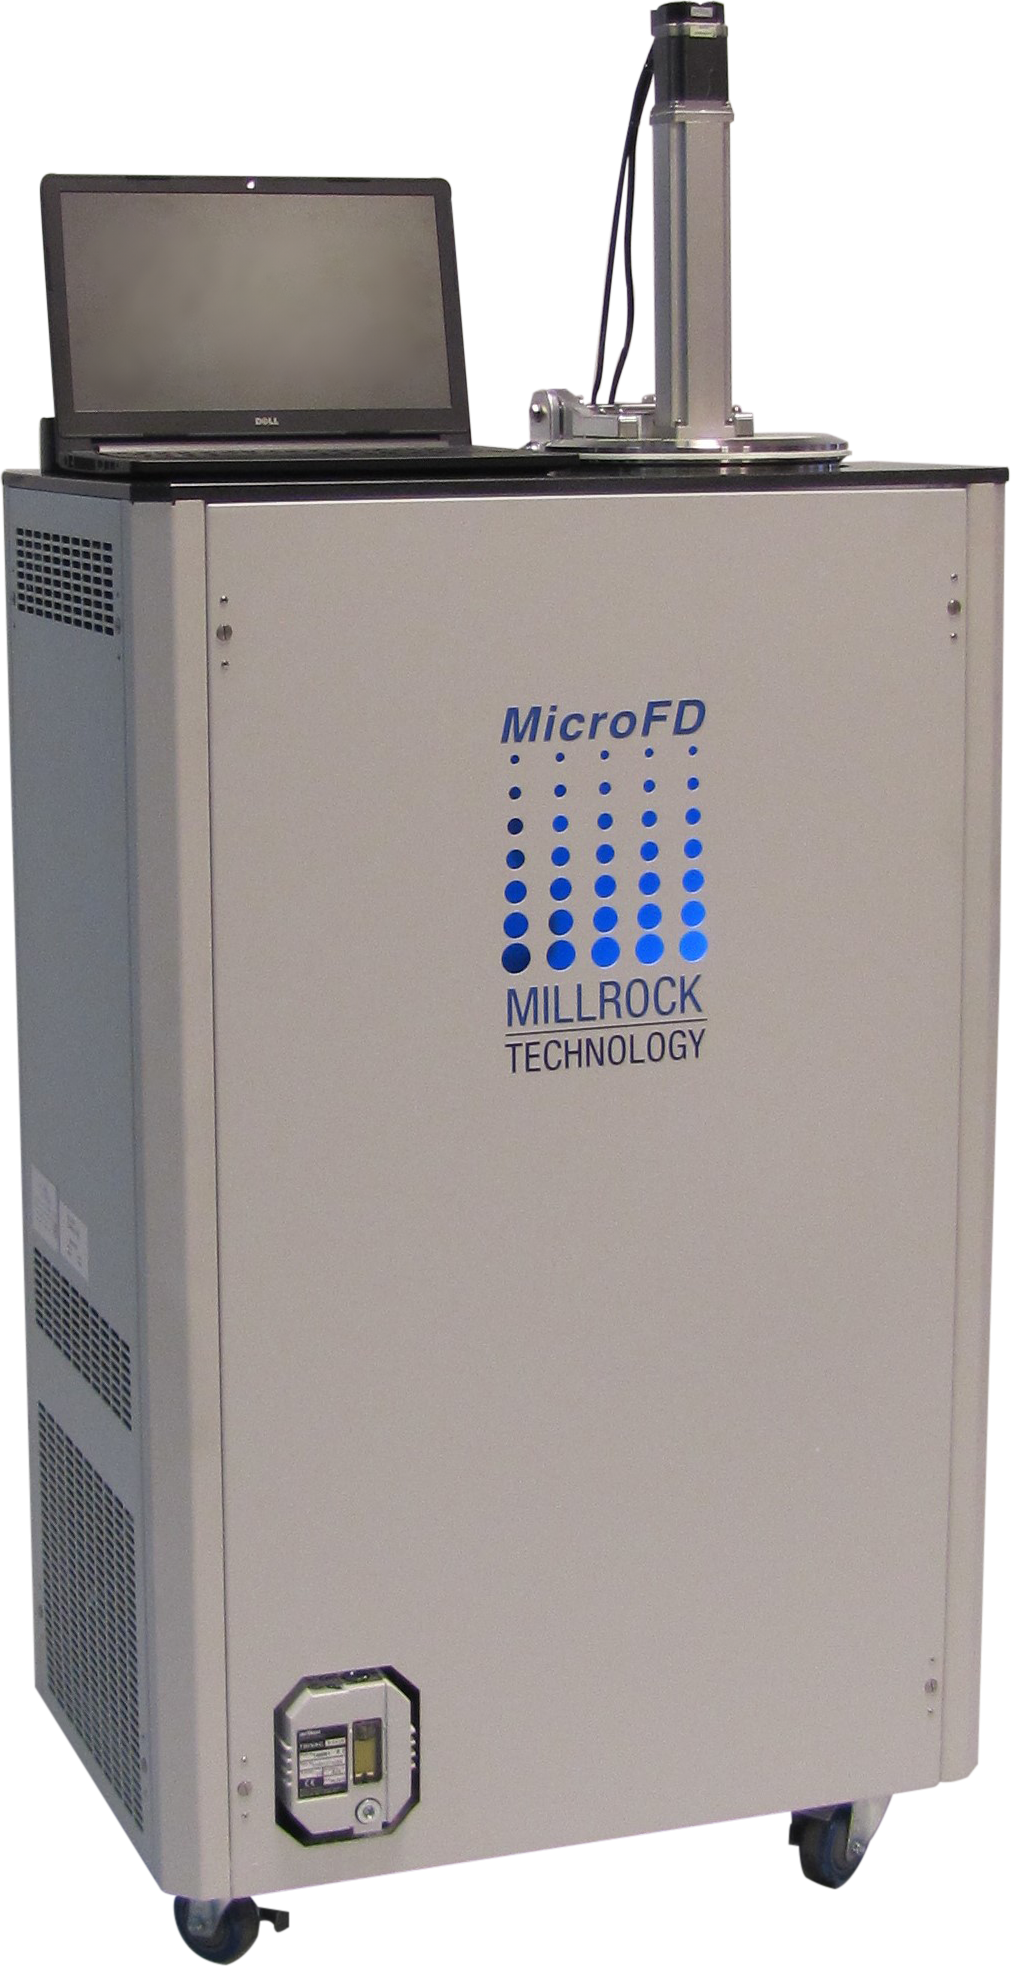 MicroFD Small Research Freeze Dryer, millrock technology